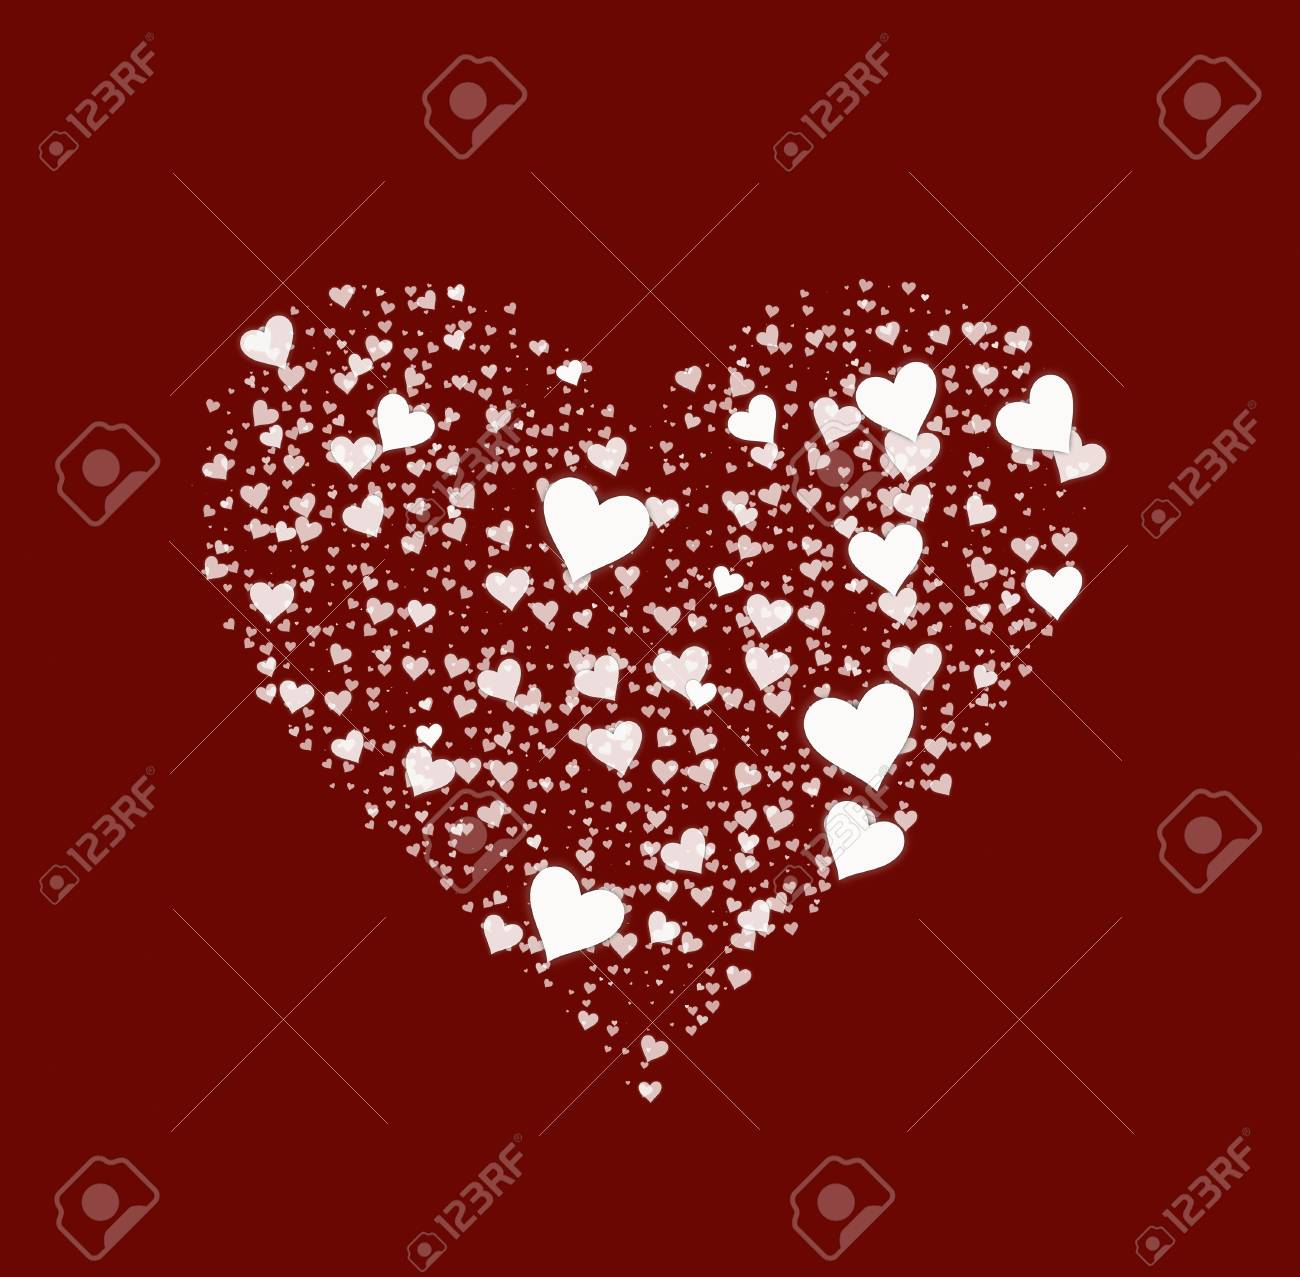 Big white heart from many small hearts love symbol stock photo big white heart from many small hearts love symbol stock photo 78793324 buycottarizona Image collections